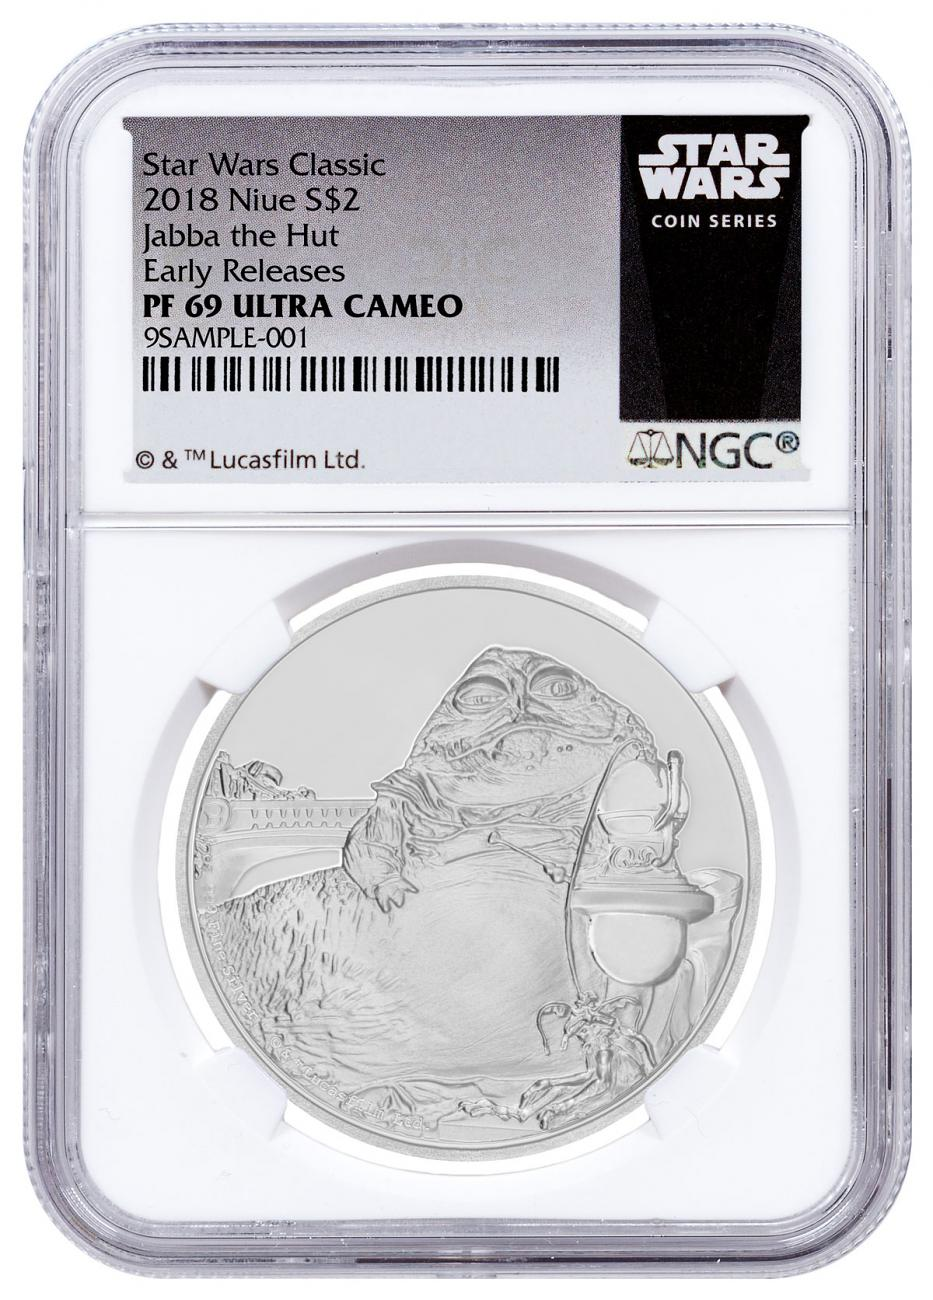 2018 Niue Star Wars Classic - Jabba the Hutt 1 oz Silver Proof $2 Coin NGC PF69 UC ER Exclusive Star Wars Label